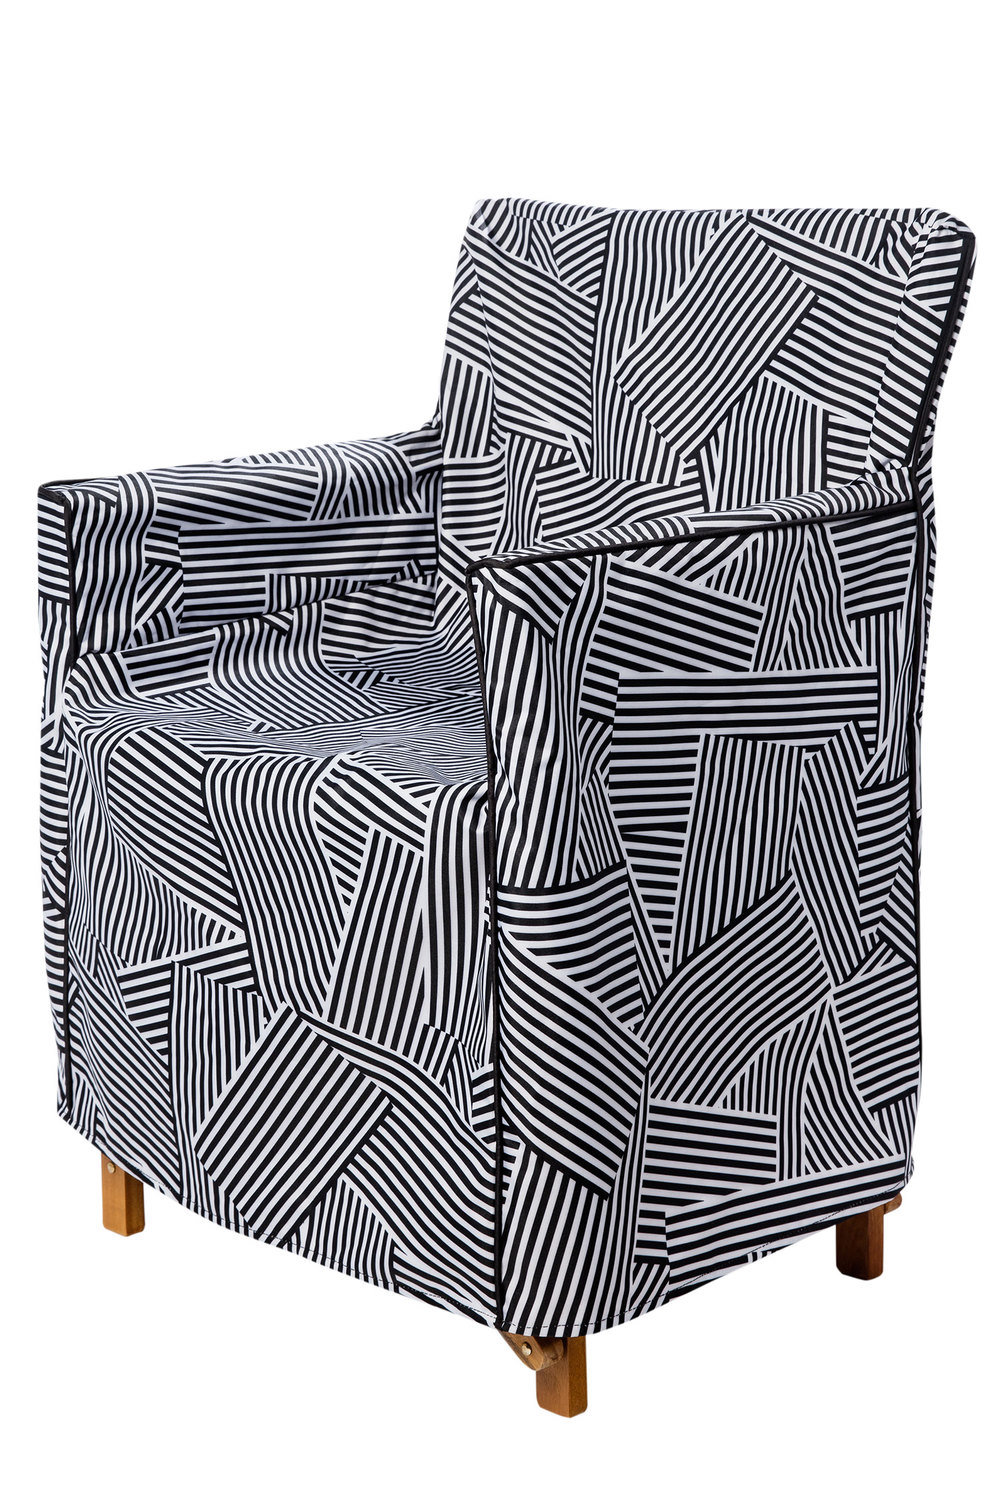 Life directors chair cover